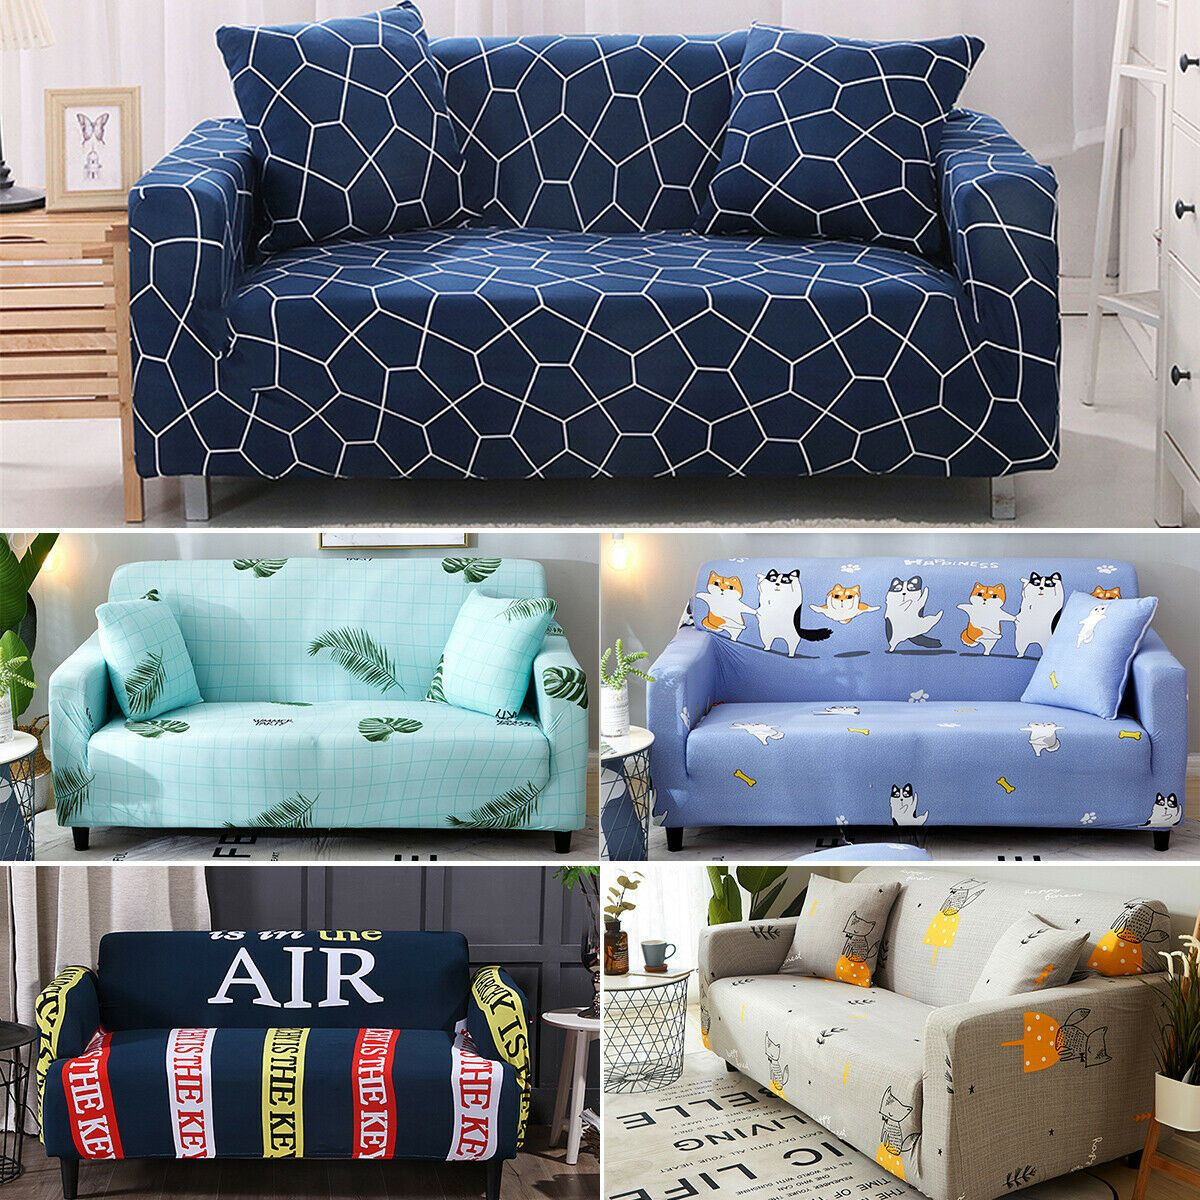 Hot 1 2 3 4 Seater Elastic Sofa Couch Covers Home Furniture Protector Slipcovers Grey Sofas Ideas Of Grey Sofas Grey Sof In 2020 Sofa Sale Kitchen Sofa Gray Sofa